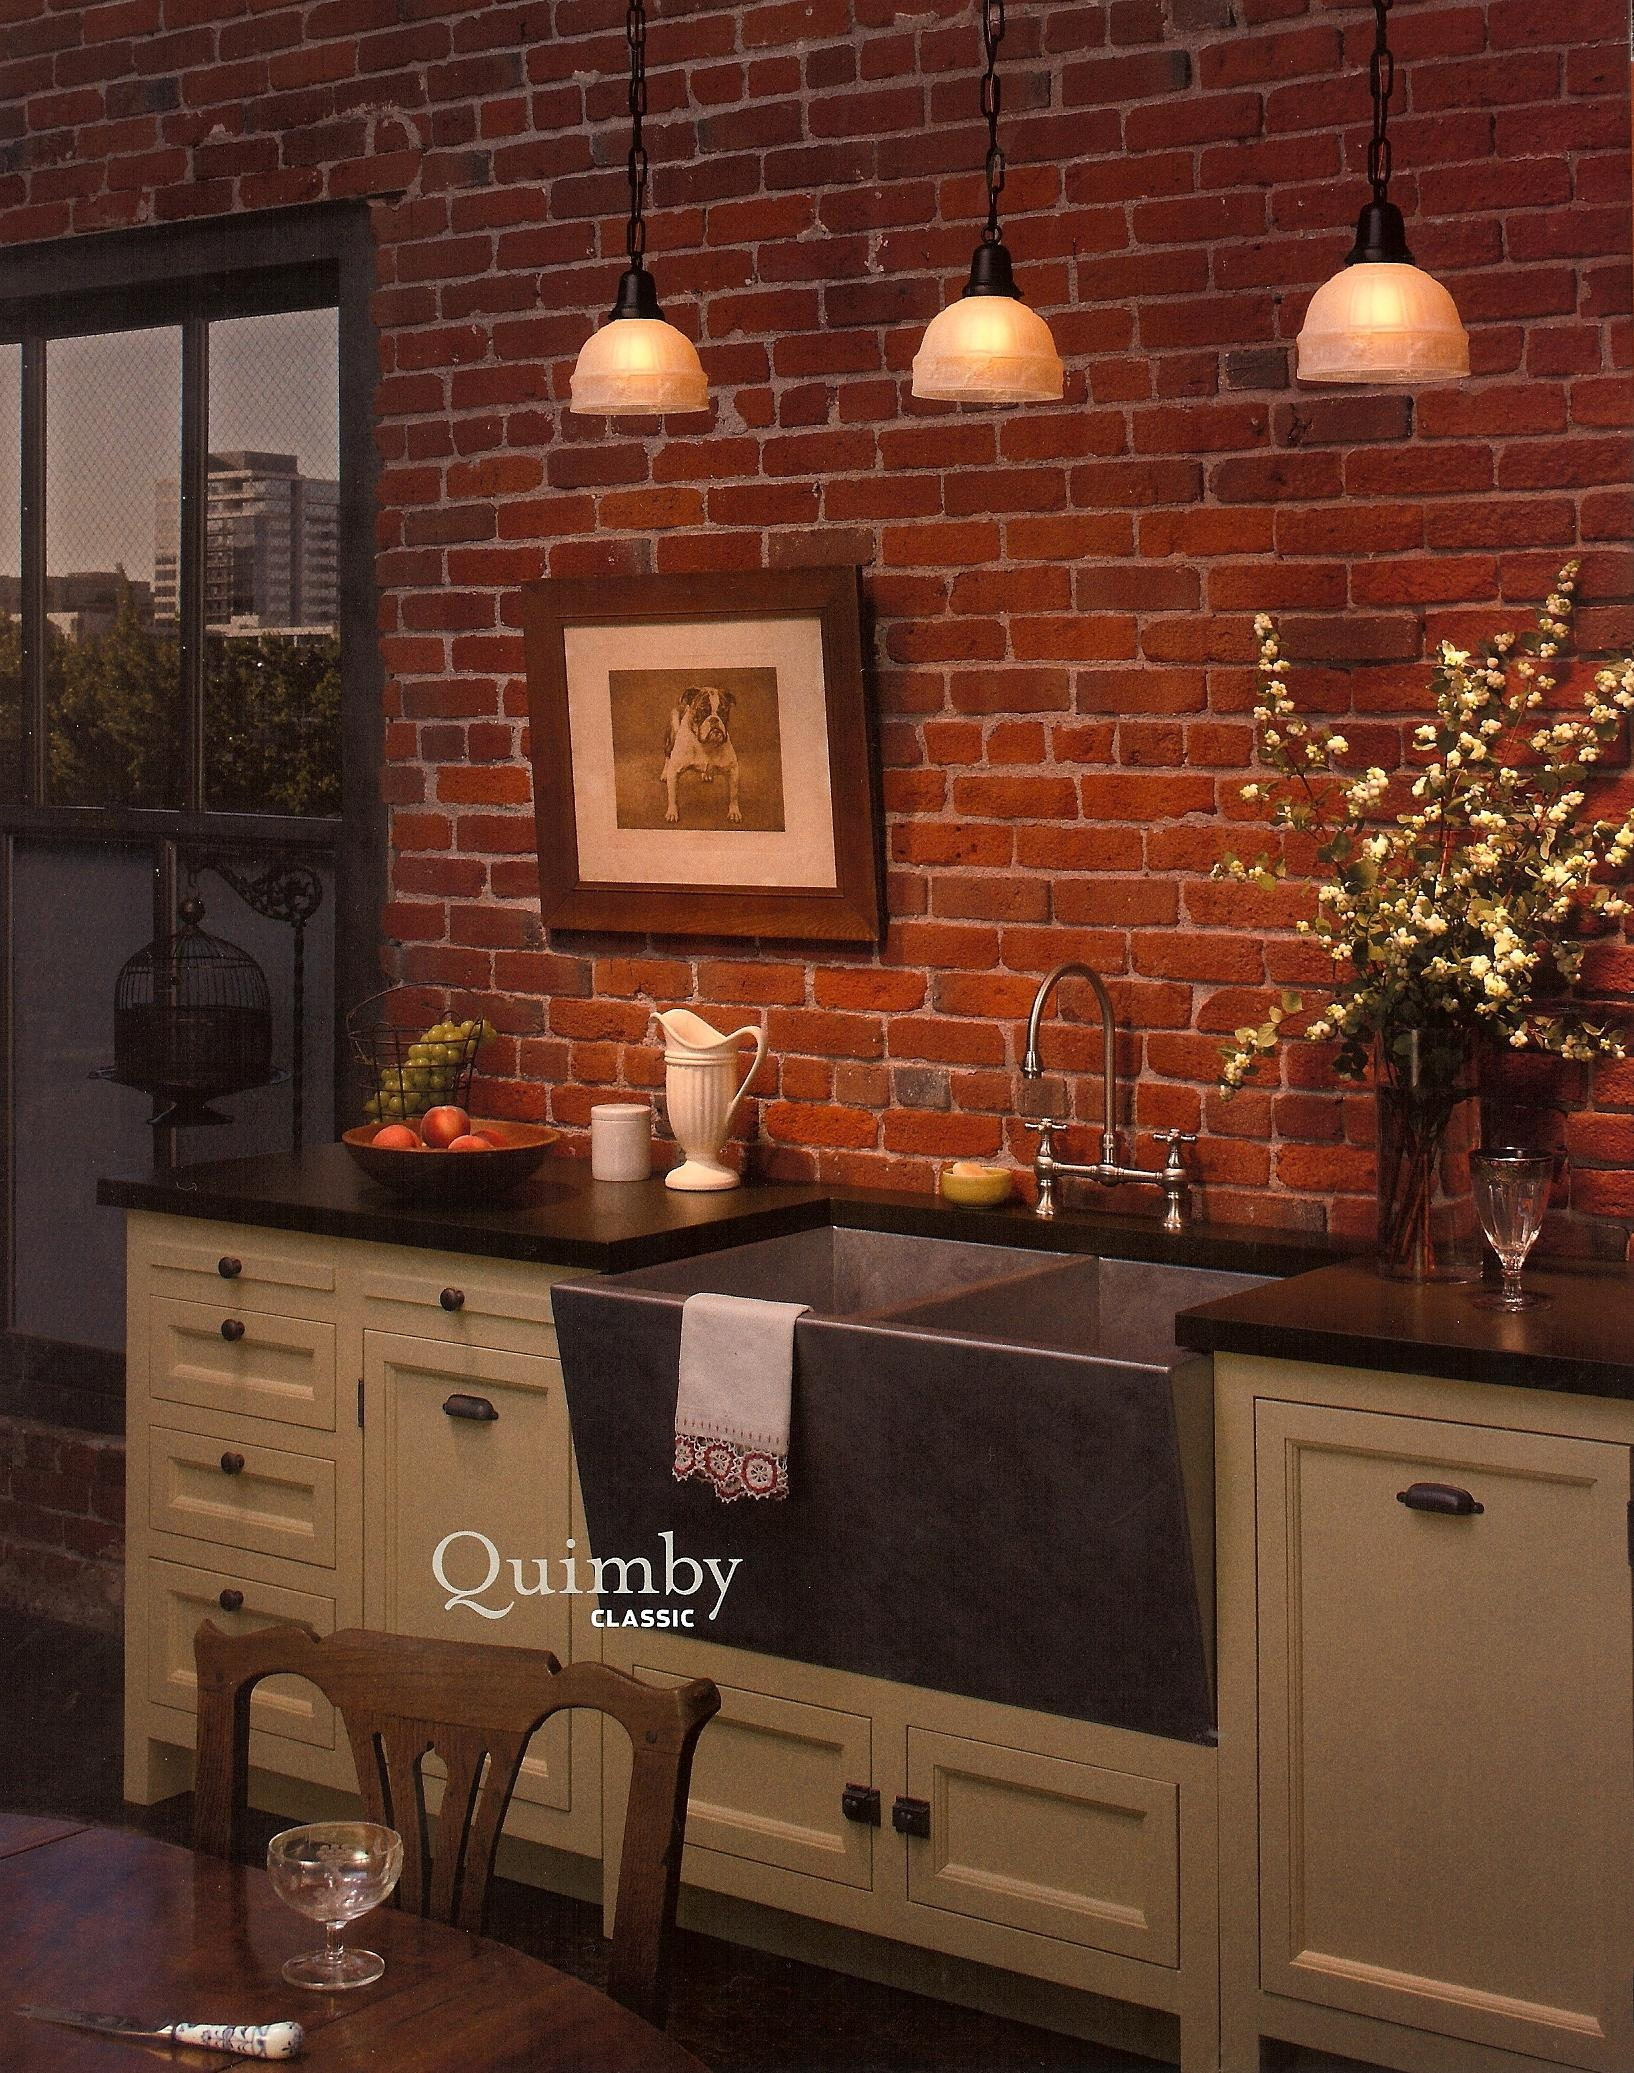 Furniture : Kitchen On Pinterest Modern Kitchens Kitchens And Intended For Hanging Wall Art For Brick Wall (Image 10 of 20)